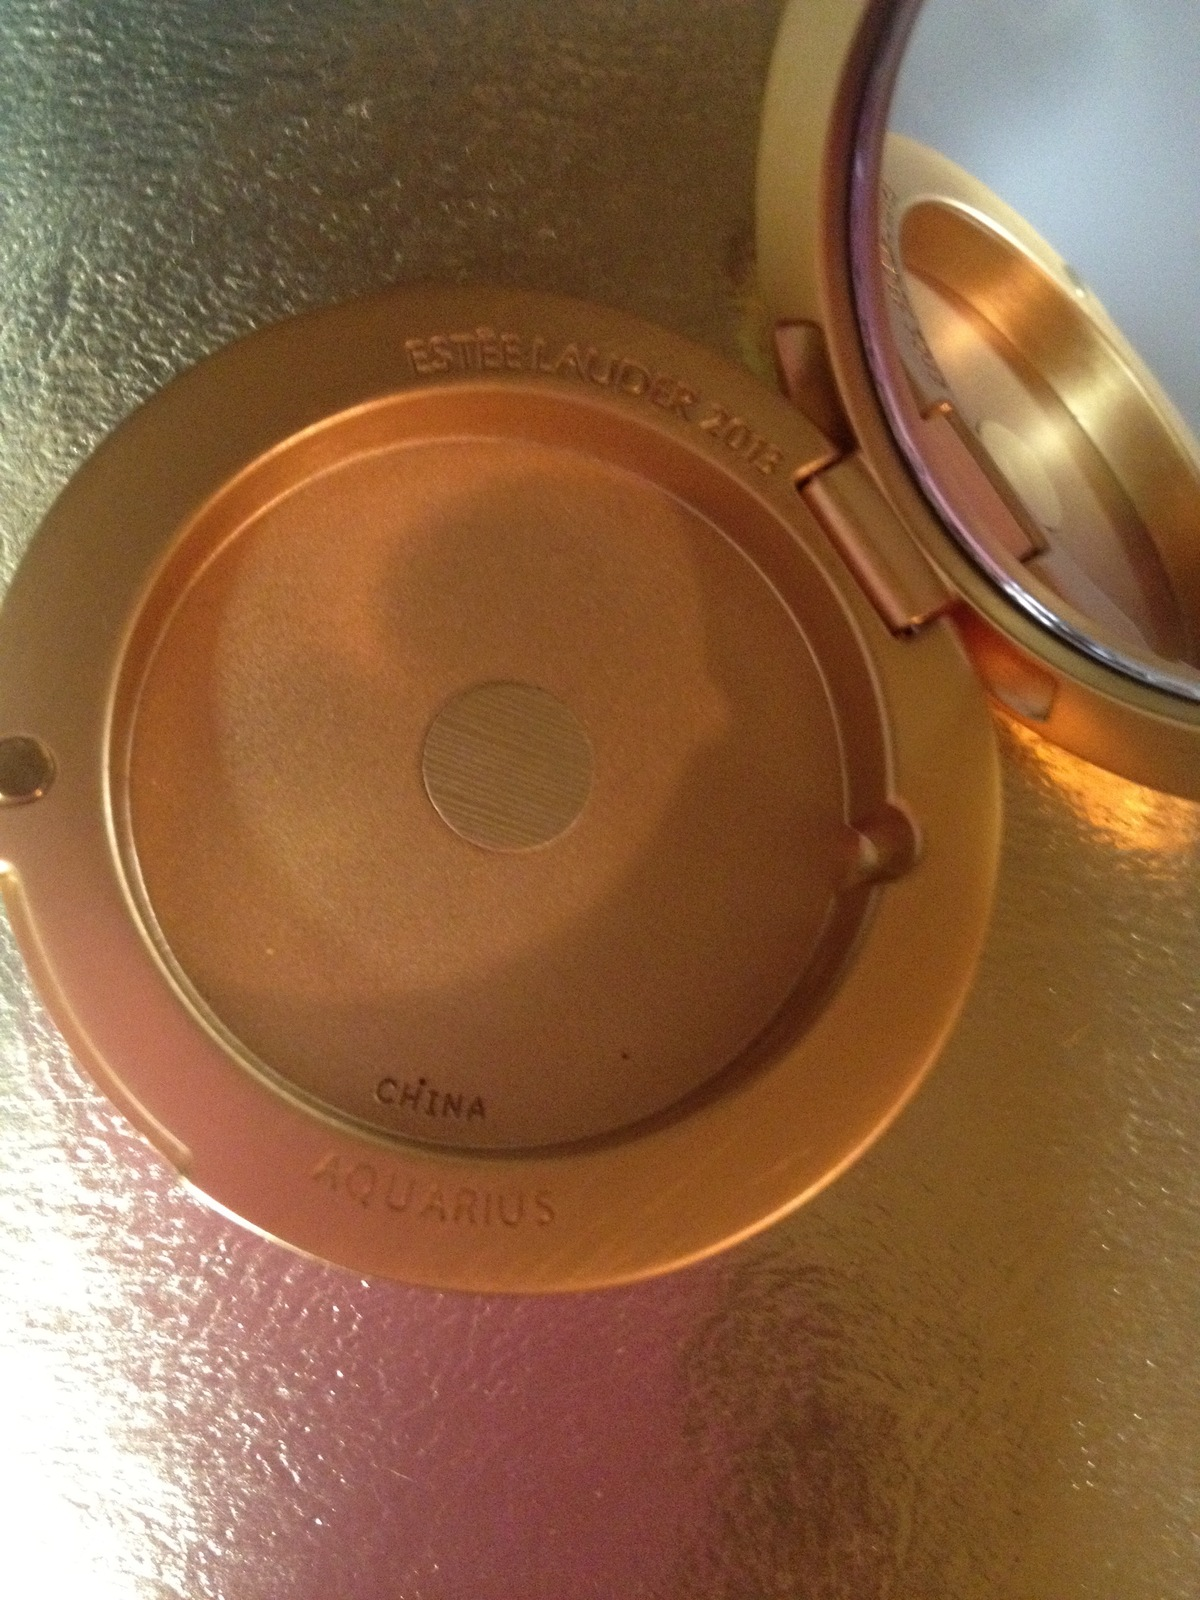 Estee Lauder GOLDEN AQUARIUS Lucidity Powder Compact 2013 Crystal accented